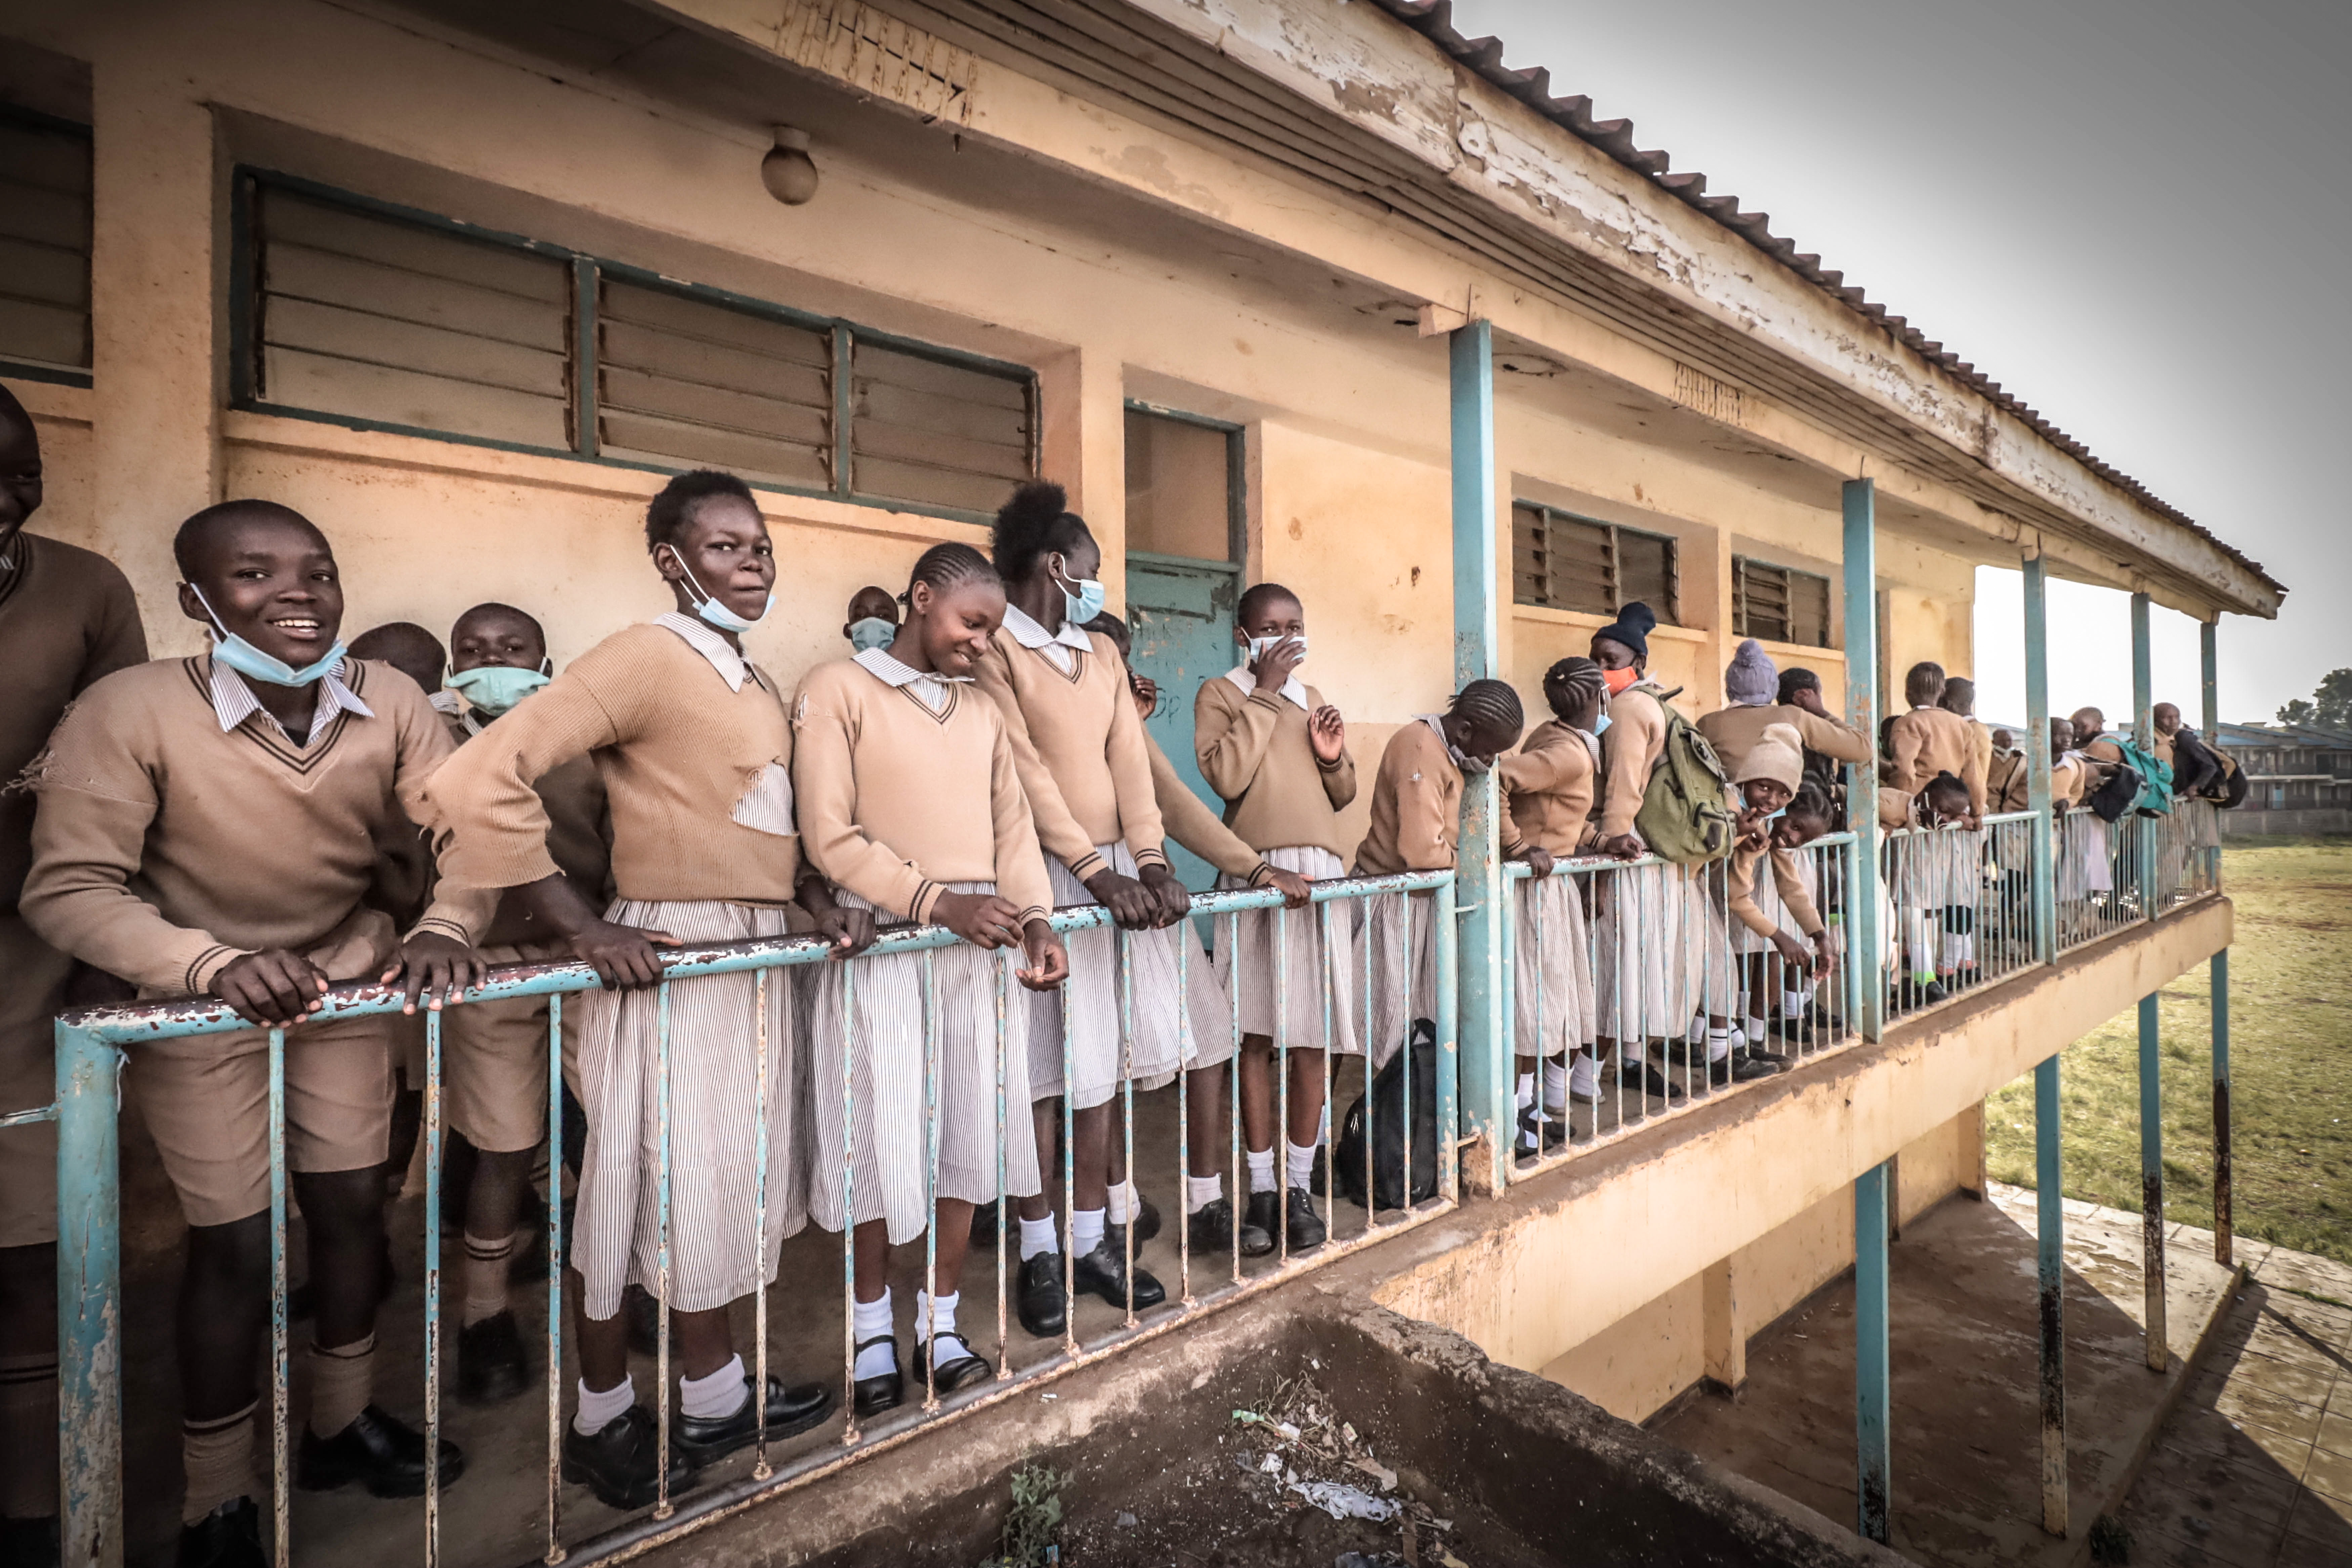 Pupils wait outside their classes at Ayany Primary School during the arrangement of their seating positions  to create social distance after a nine months period of no school due to the coronavirus pandemic. (Photo by Donwilson Odhiambo / SOPA Images/Sipa USA)No Use UK. No Use Germany.